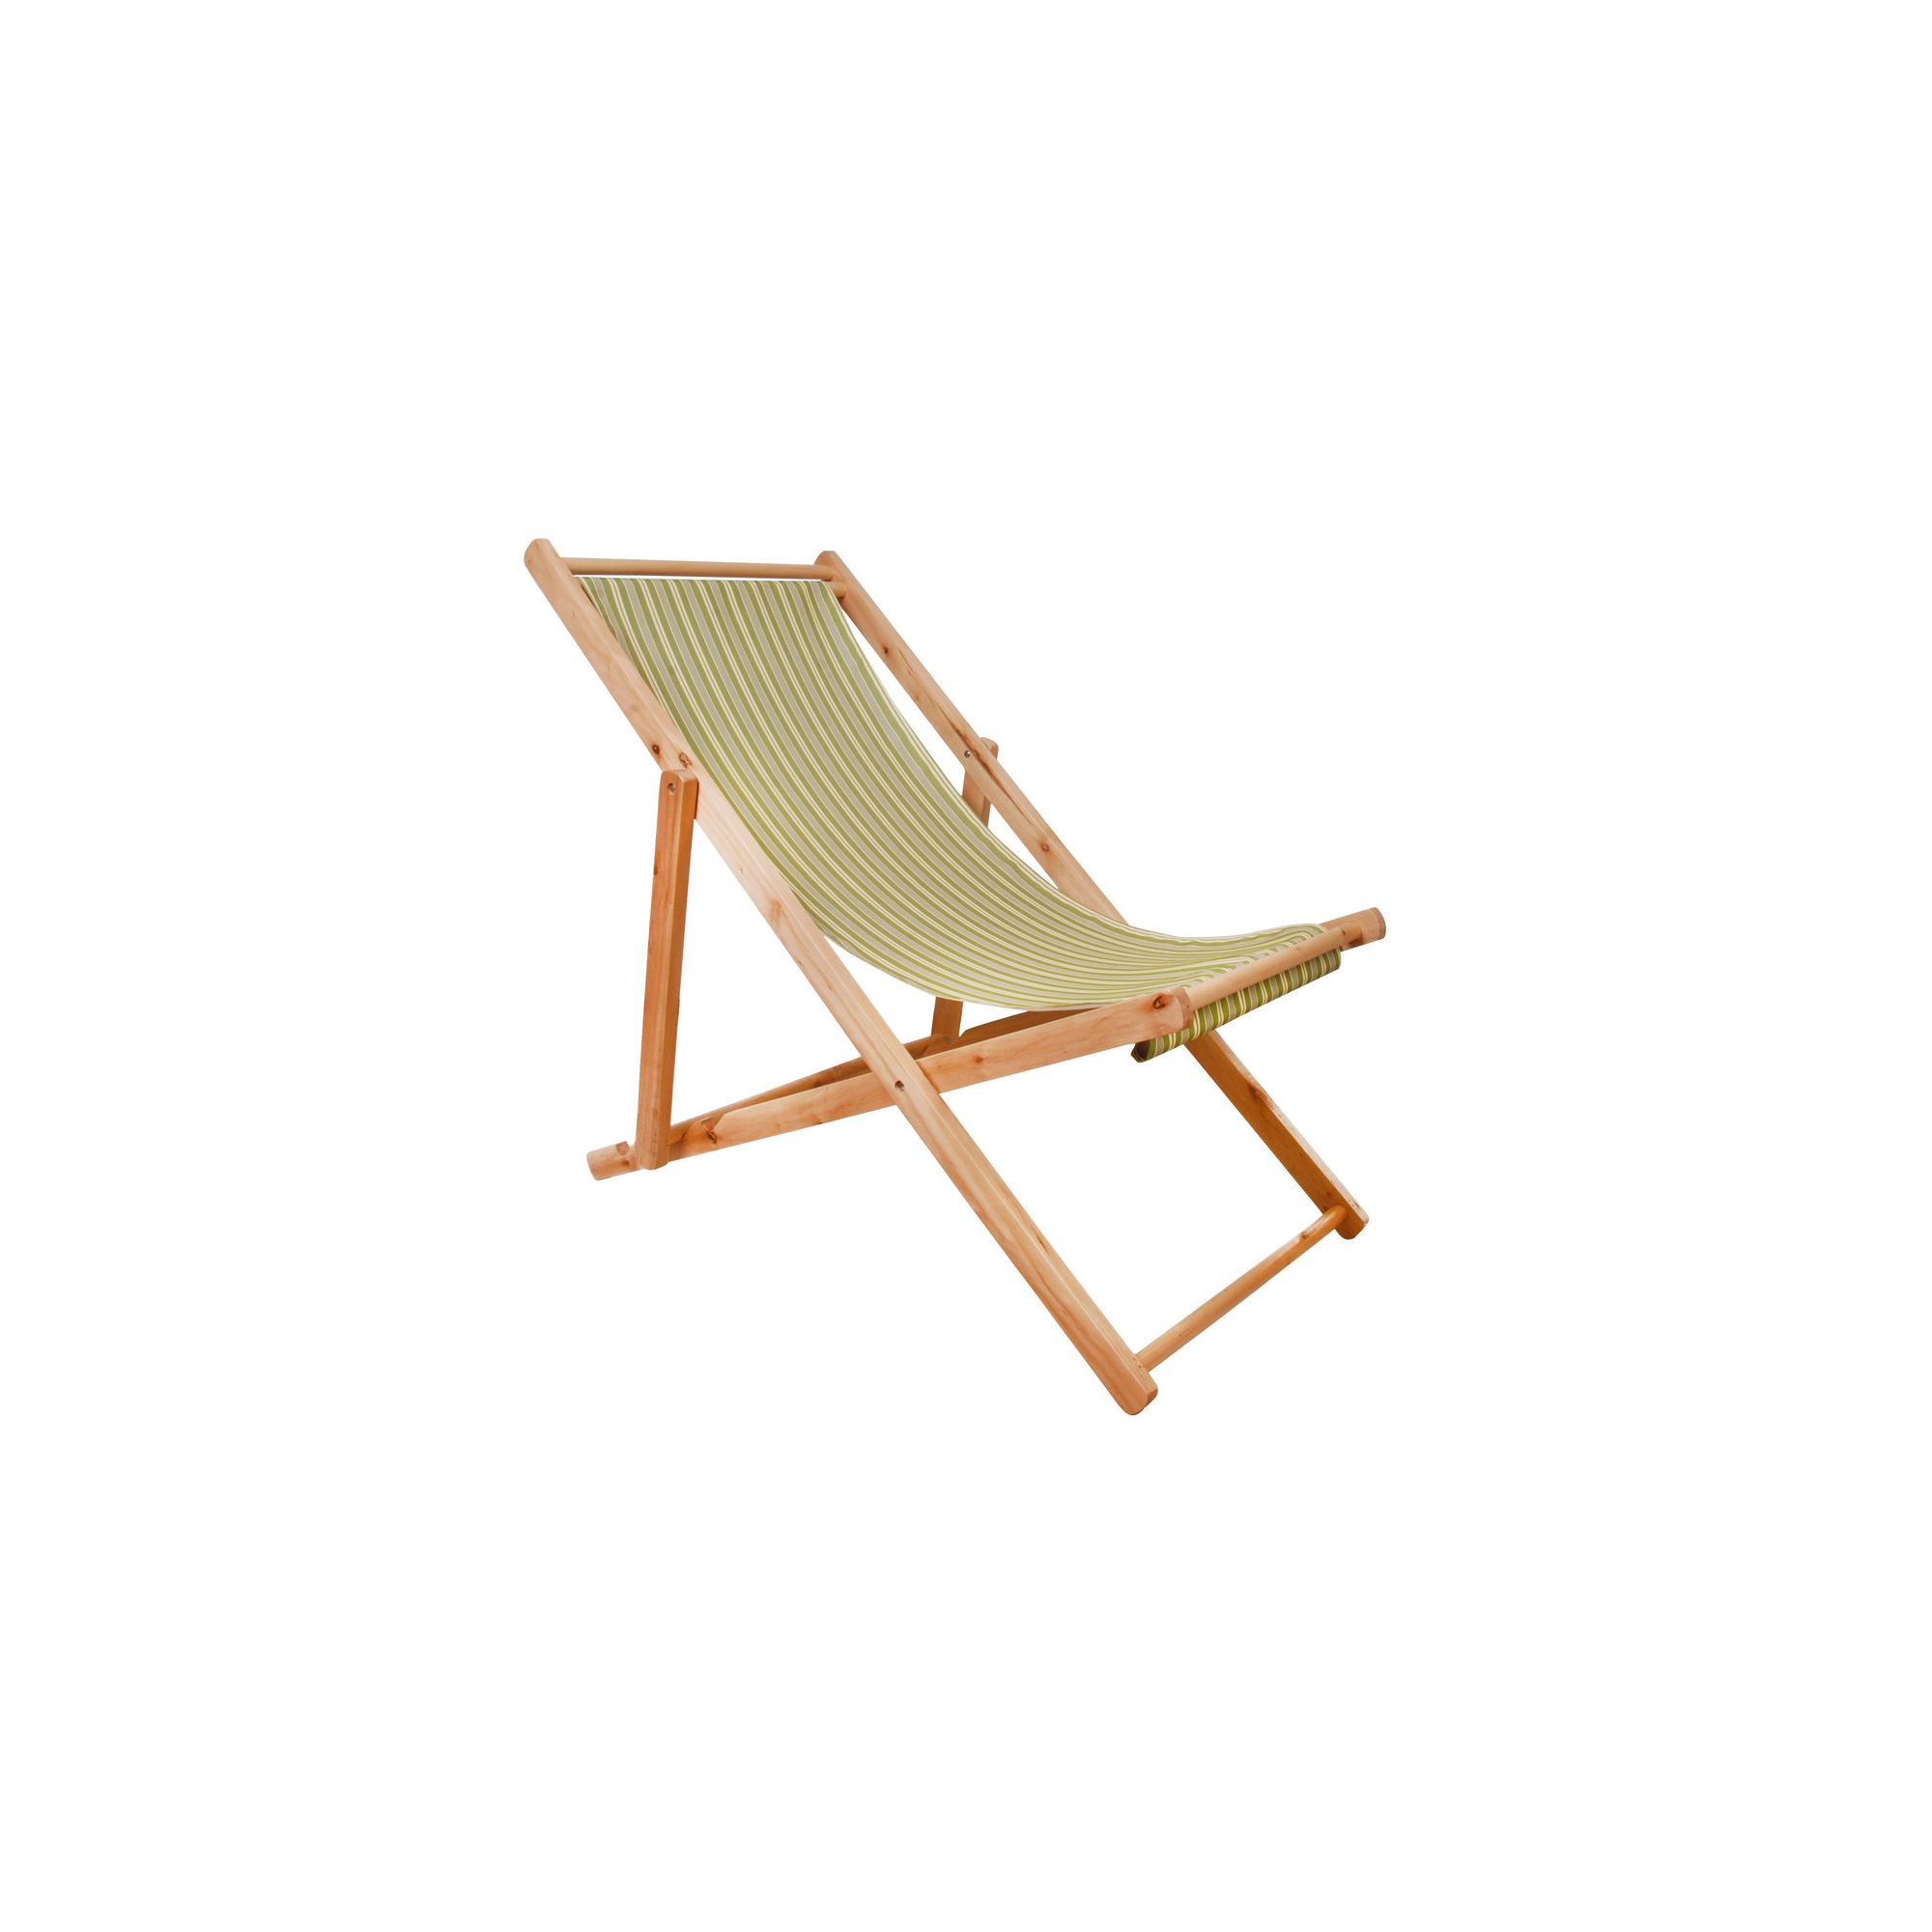 Offerta: Fallen Fruits Deck Chair